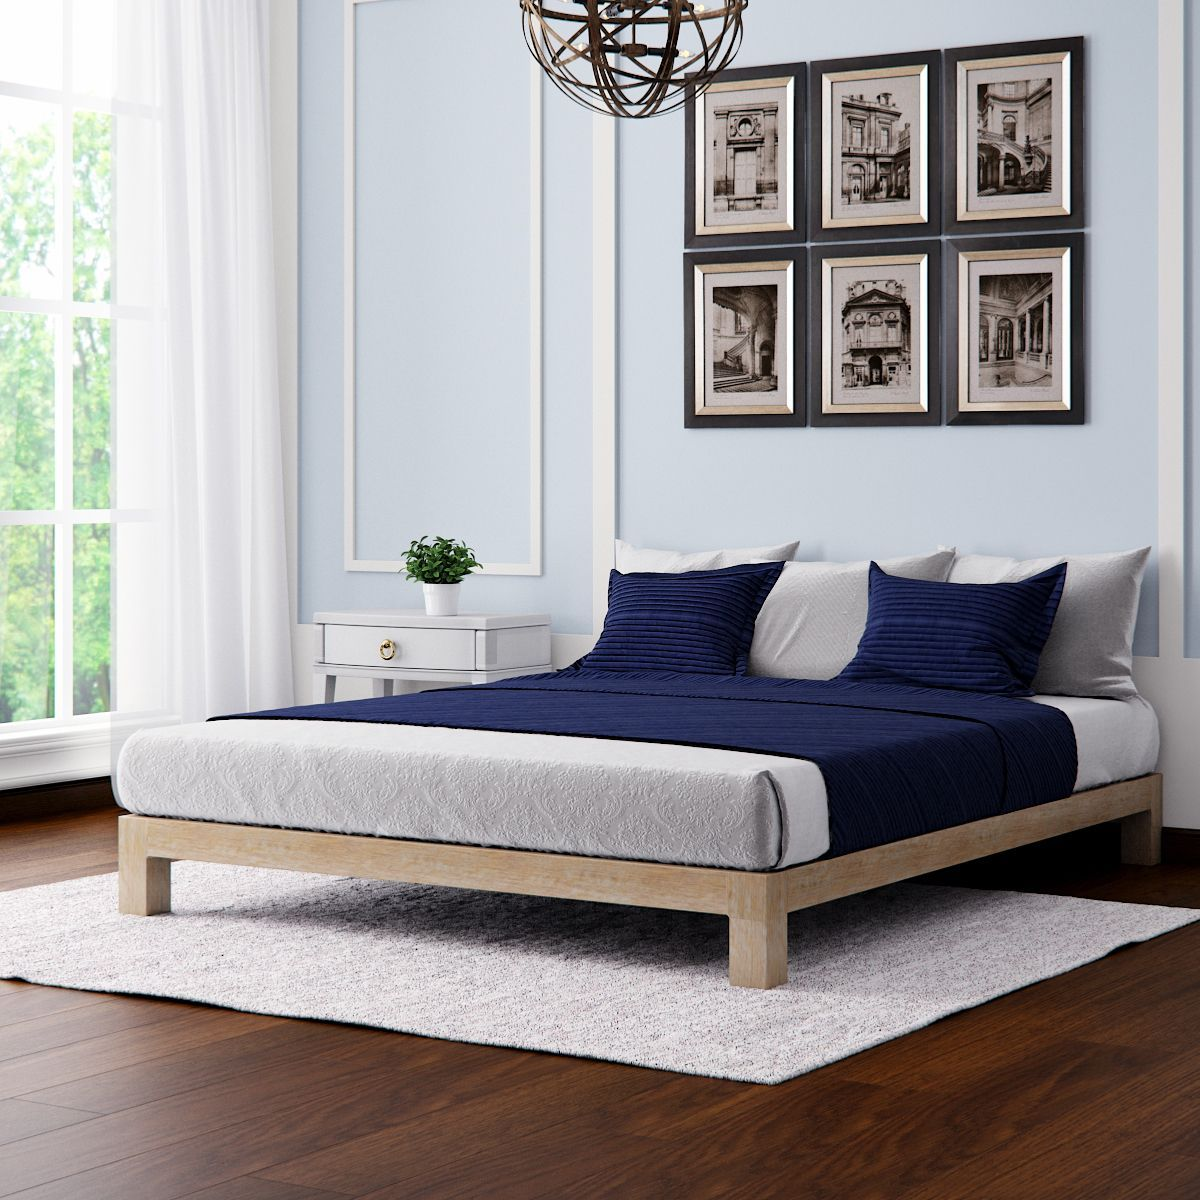 Queen Beds Online Queen Beds Transform The Look Of Your Bedroom By Updating